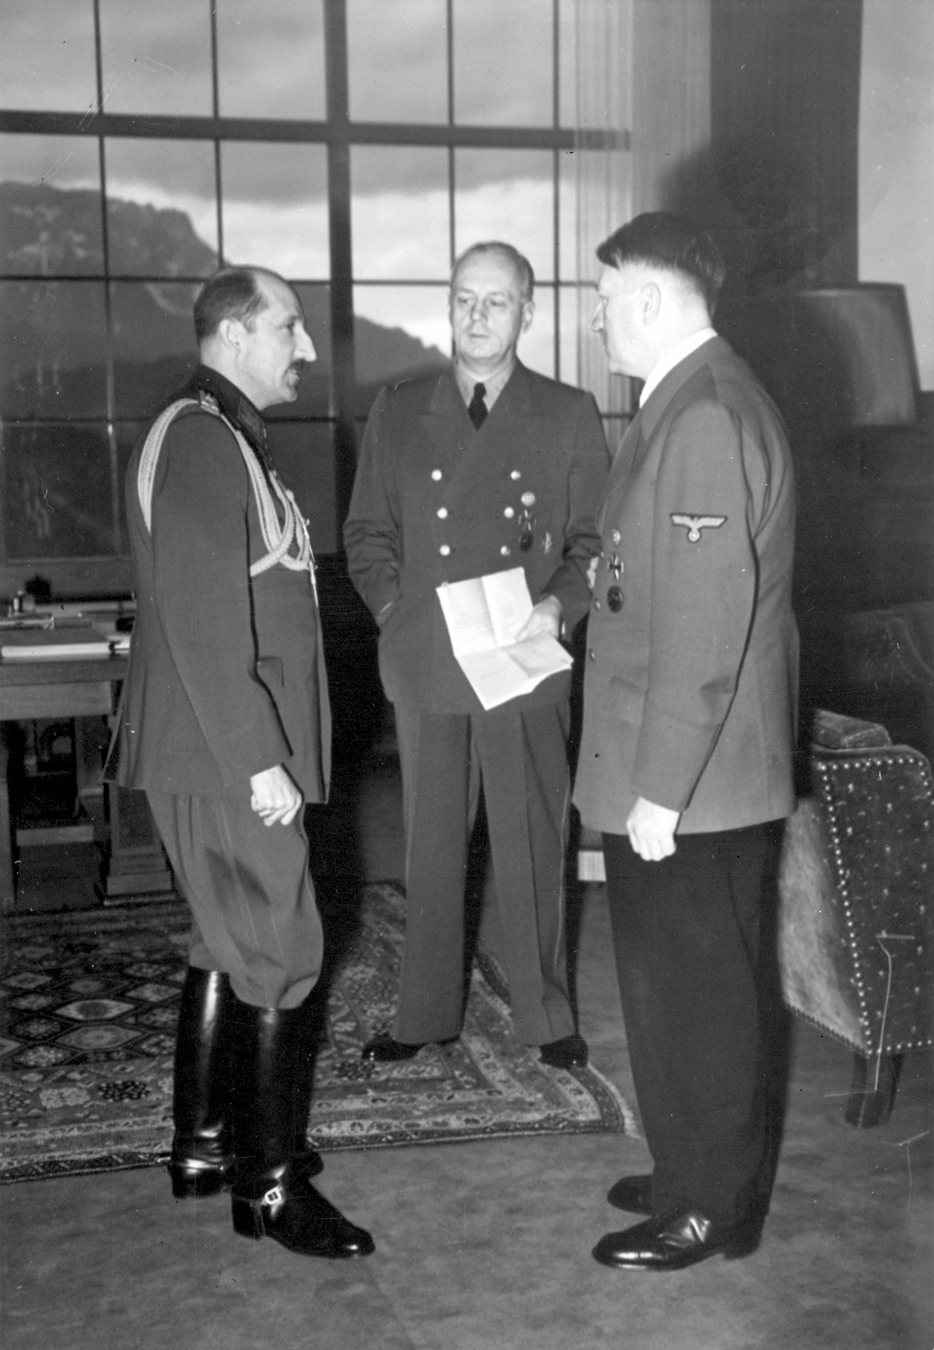 Adolf Hitler in conversation with Zar Boris III and Joachim von Ribbentrop in the great hall of the Berghof, from Eva Braun's albums